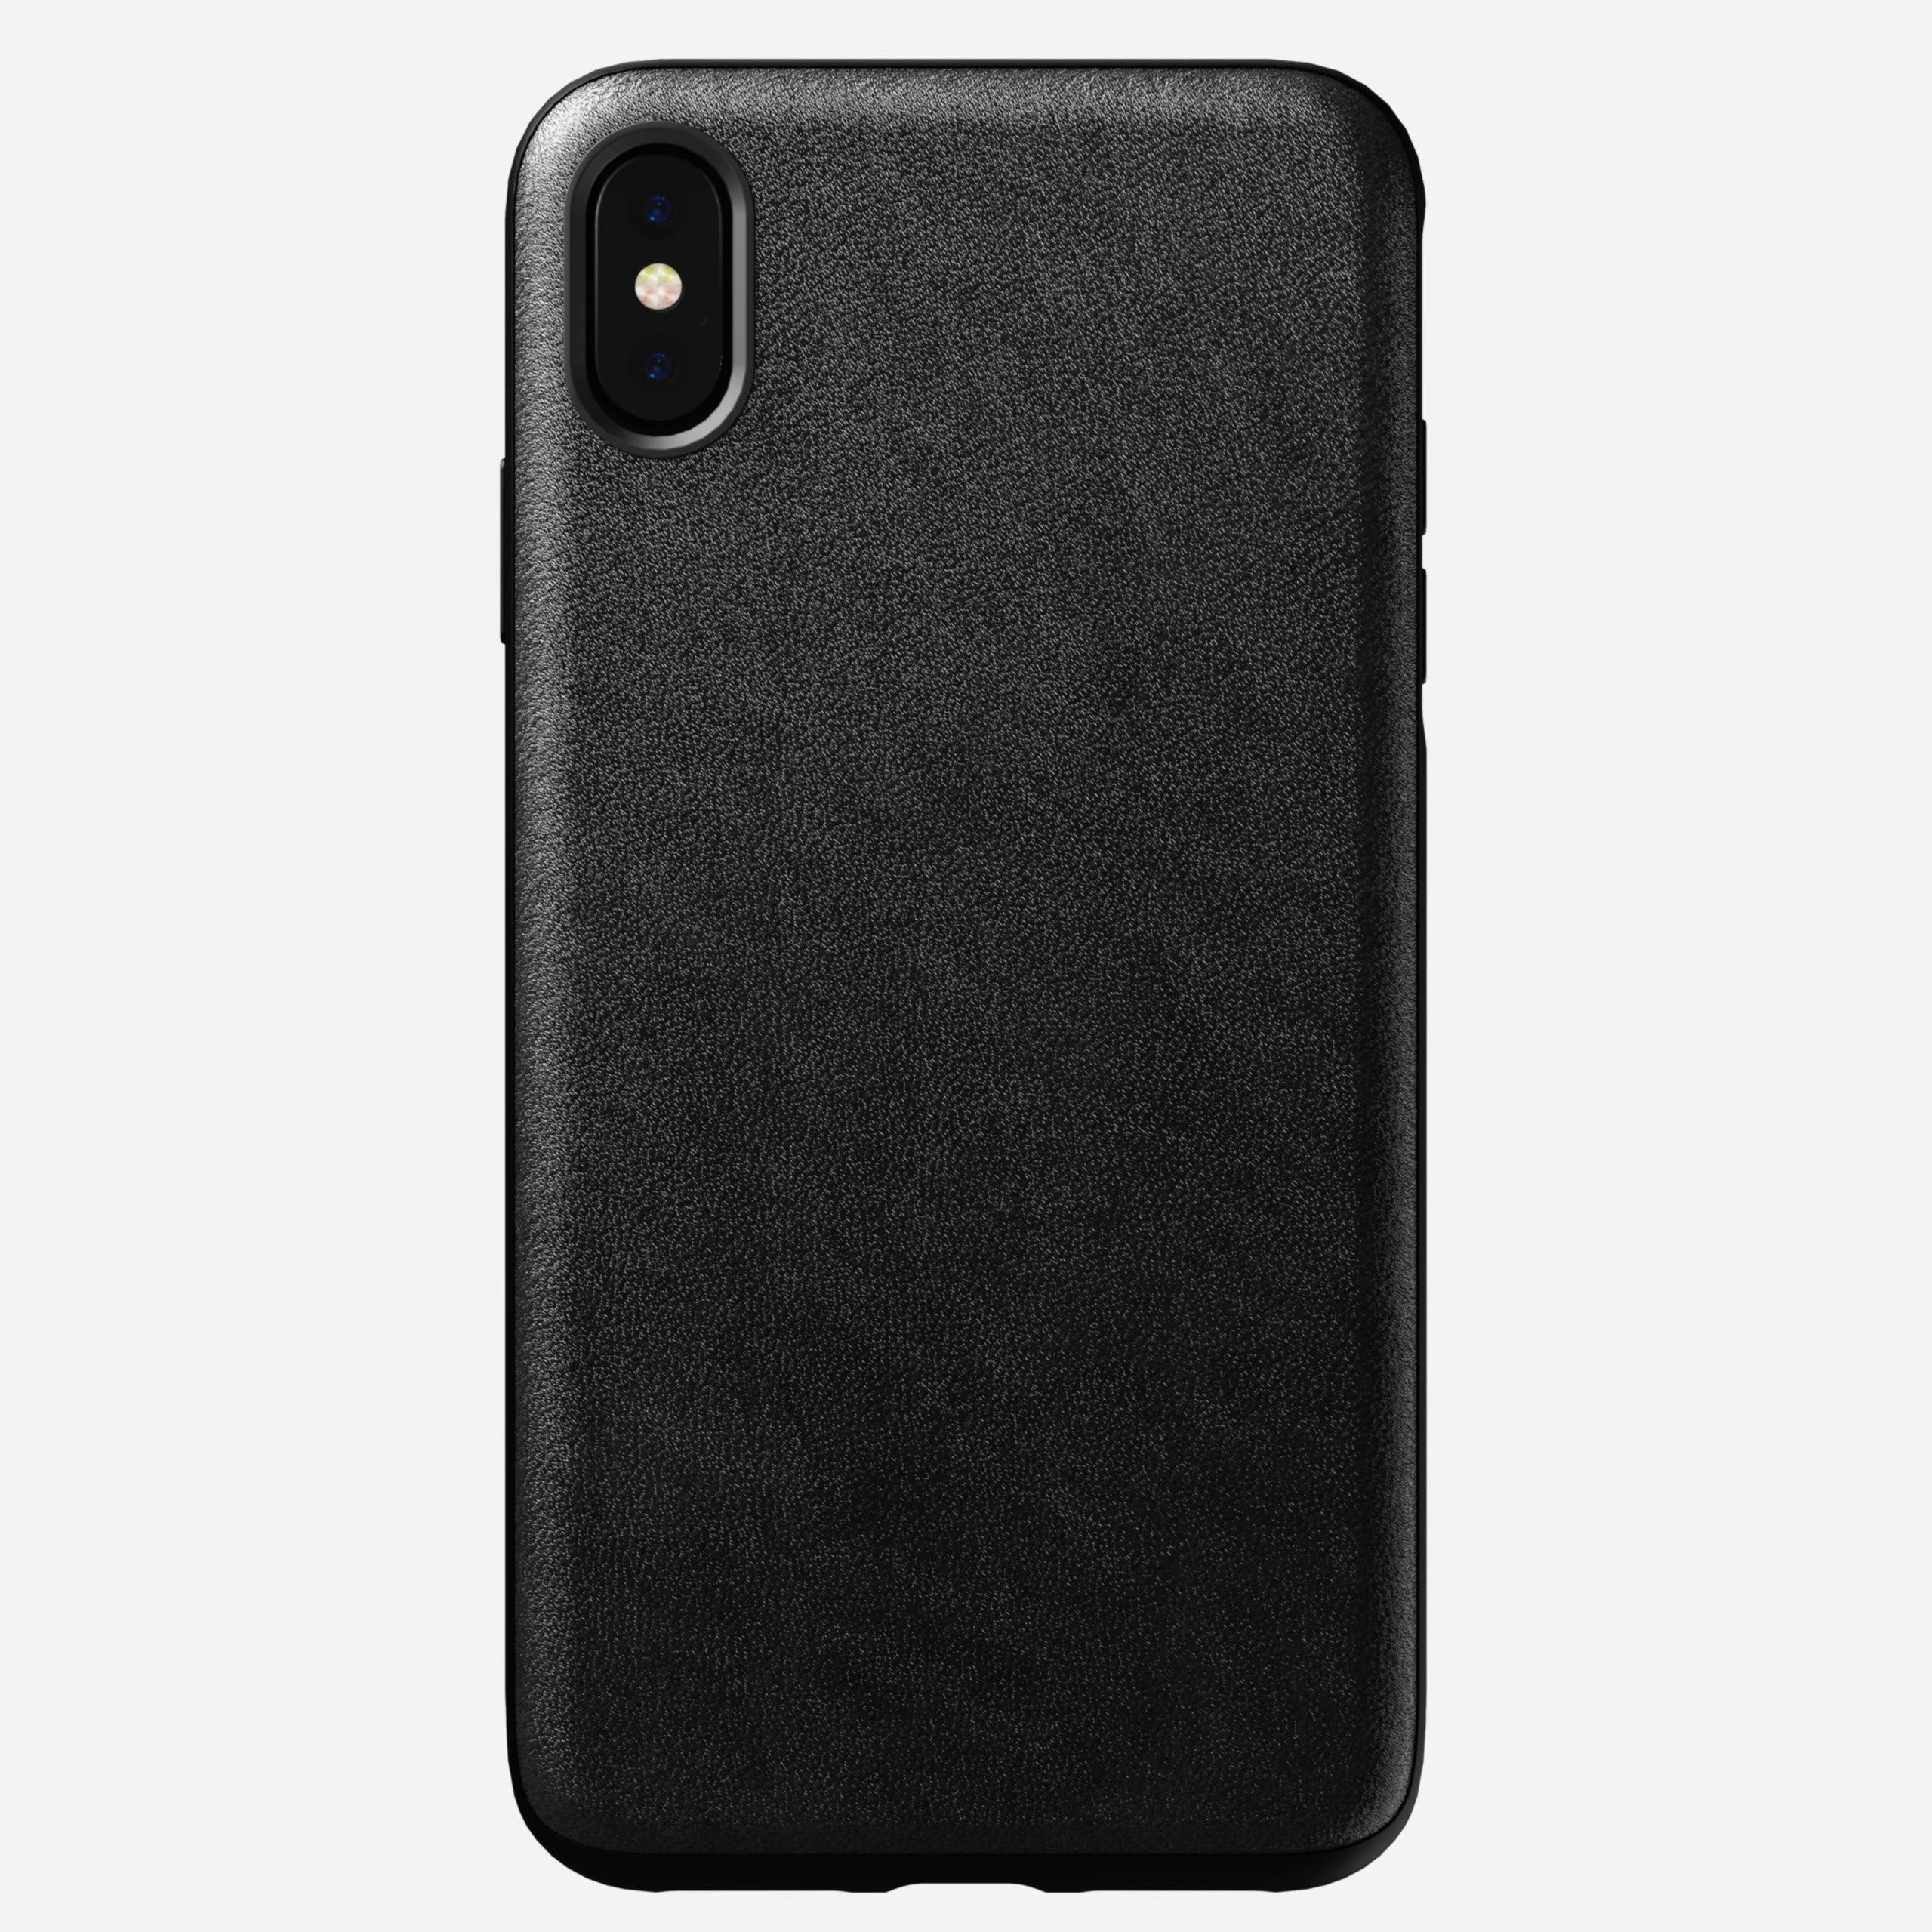 Rugged case black xs max